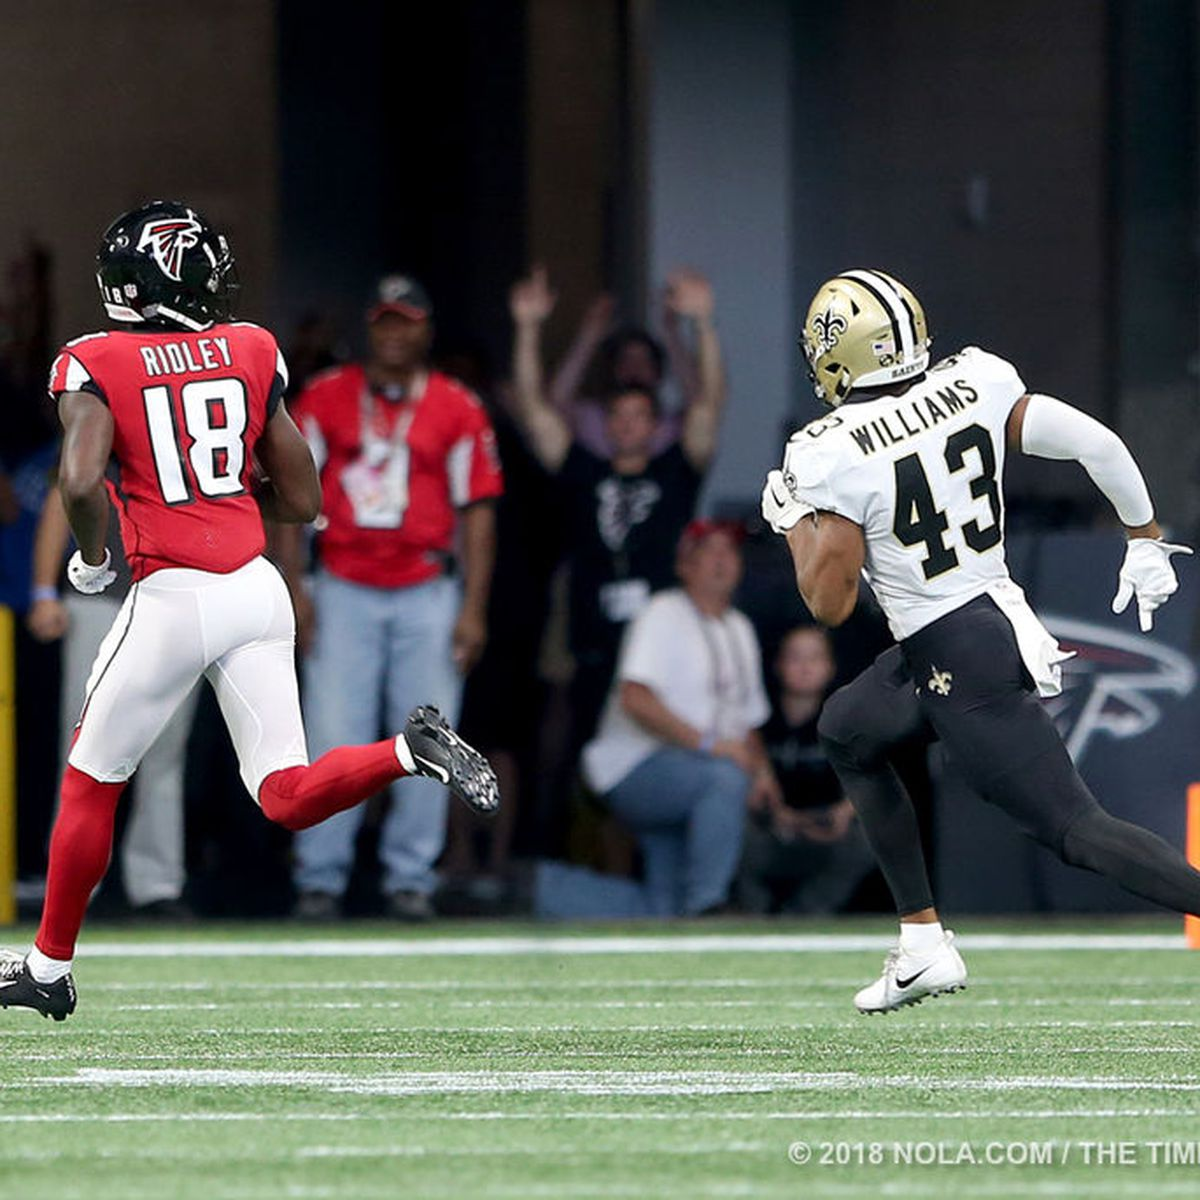 Payton needs to see more forced turnovers from the Saints defense